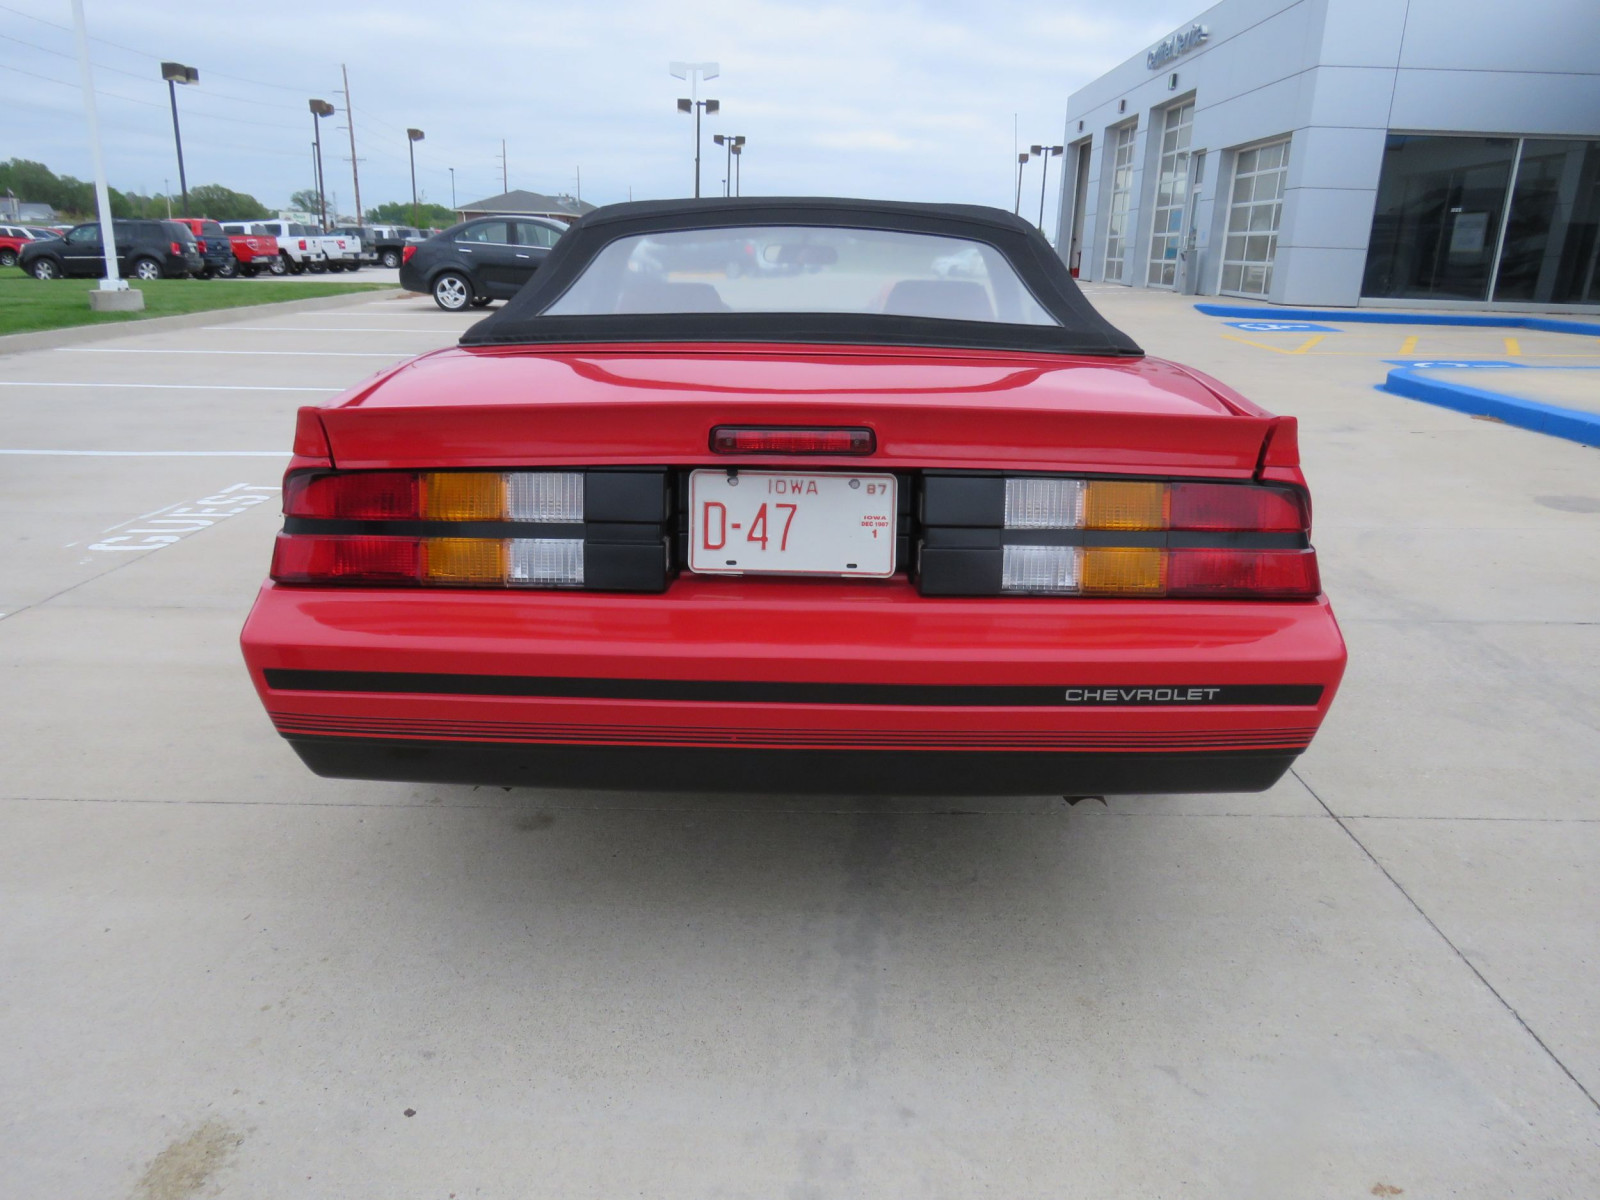 1987 Chevrolet Camaro RS Convertible - Image 12